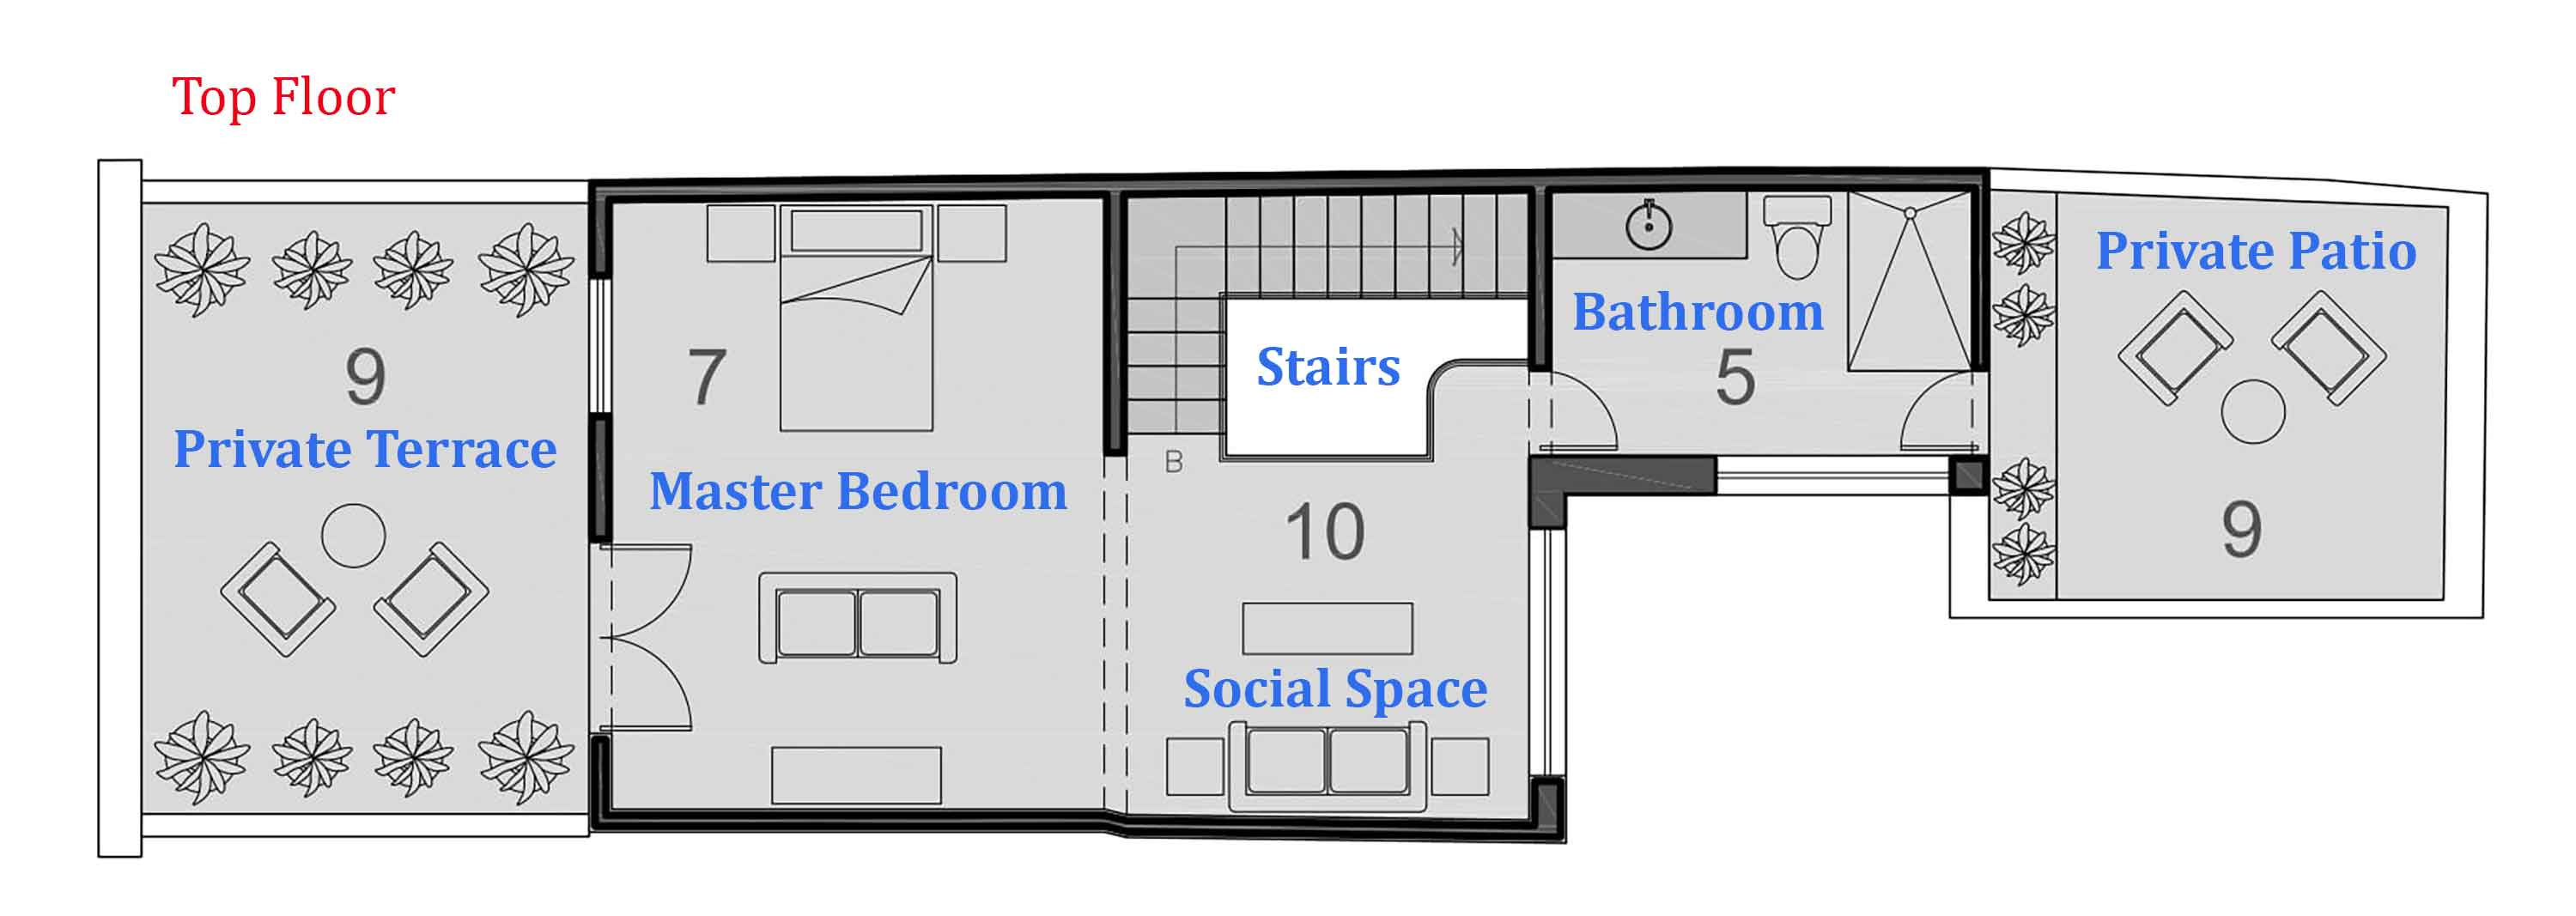 Top-Floor-Labelled